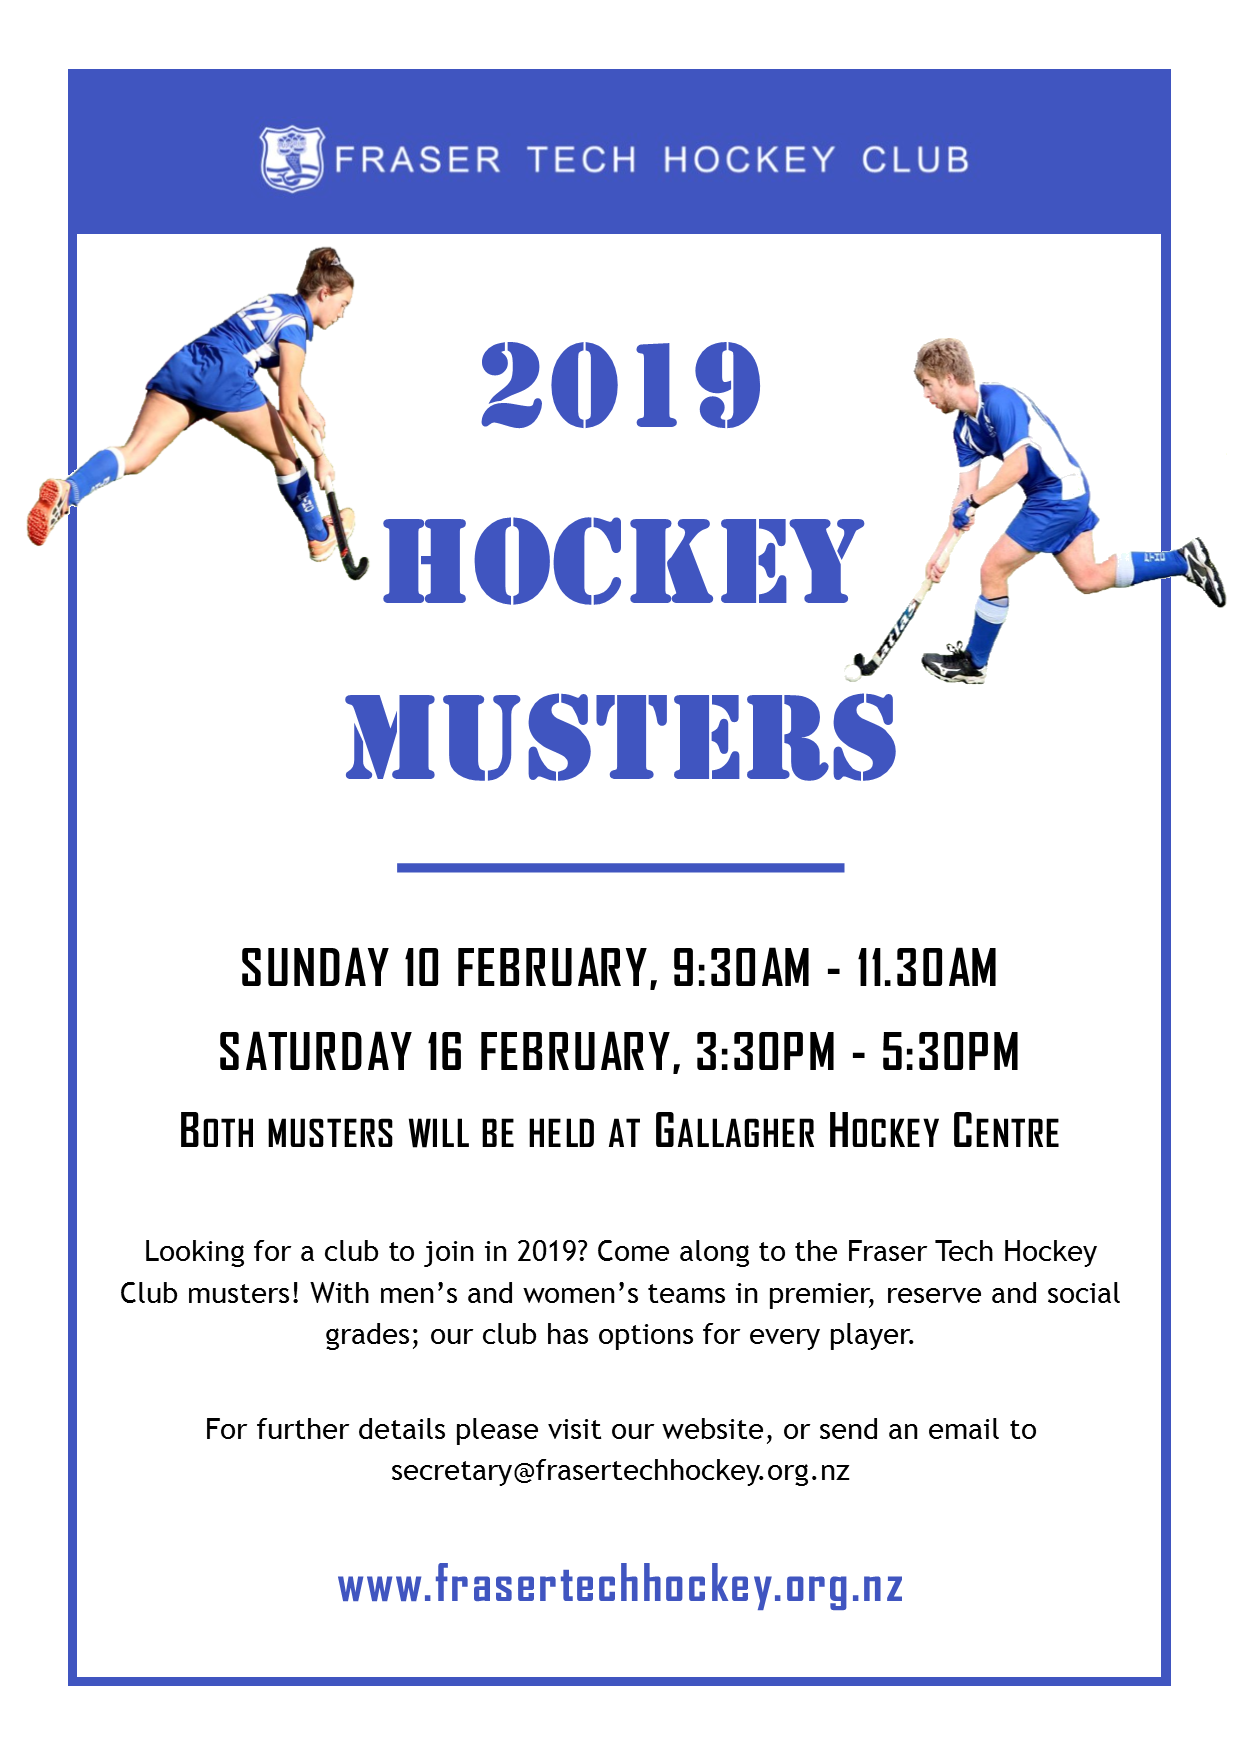 2019 Muster and Trials